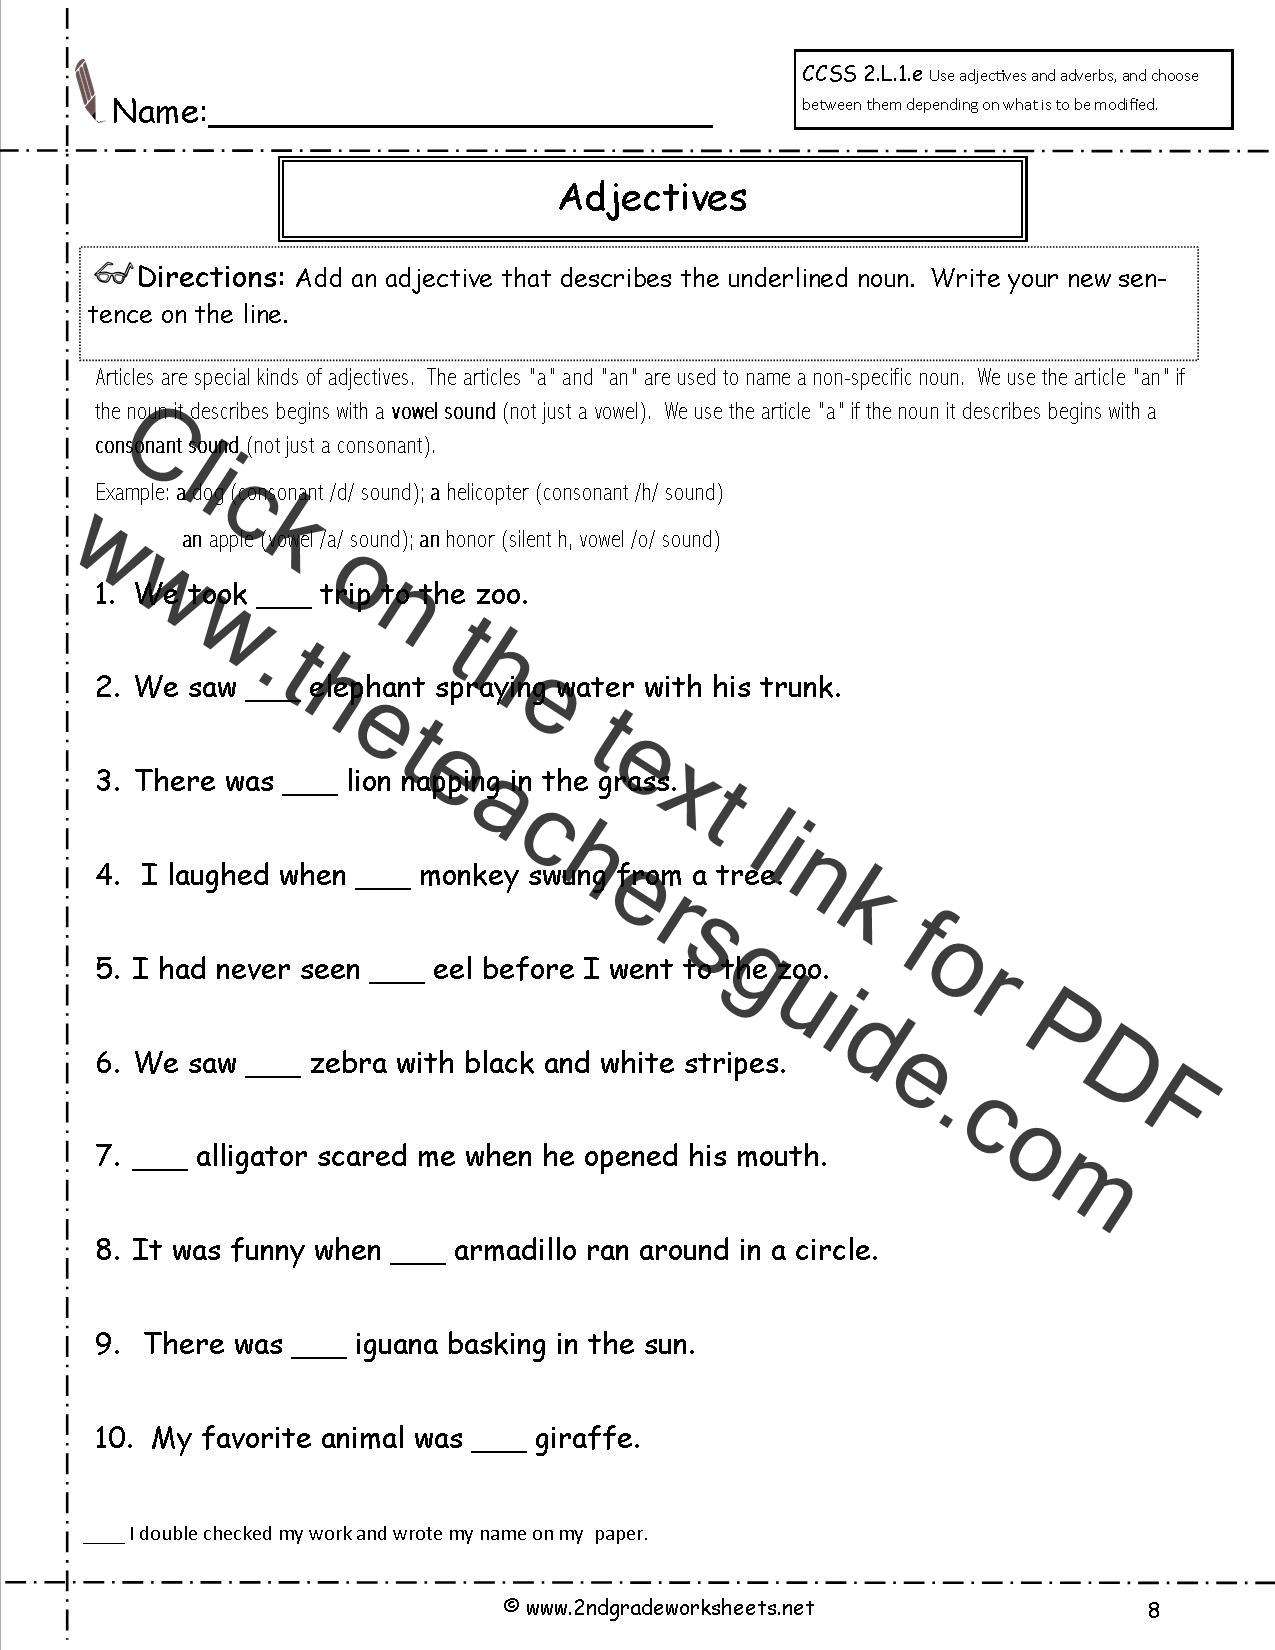 Uncategorized Second Grade Science Worksheets free languagegrammar worksheets and printouts adjectives worksheets